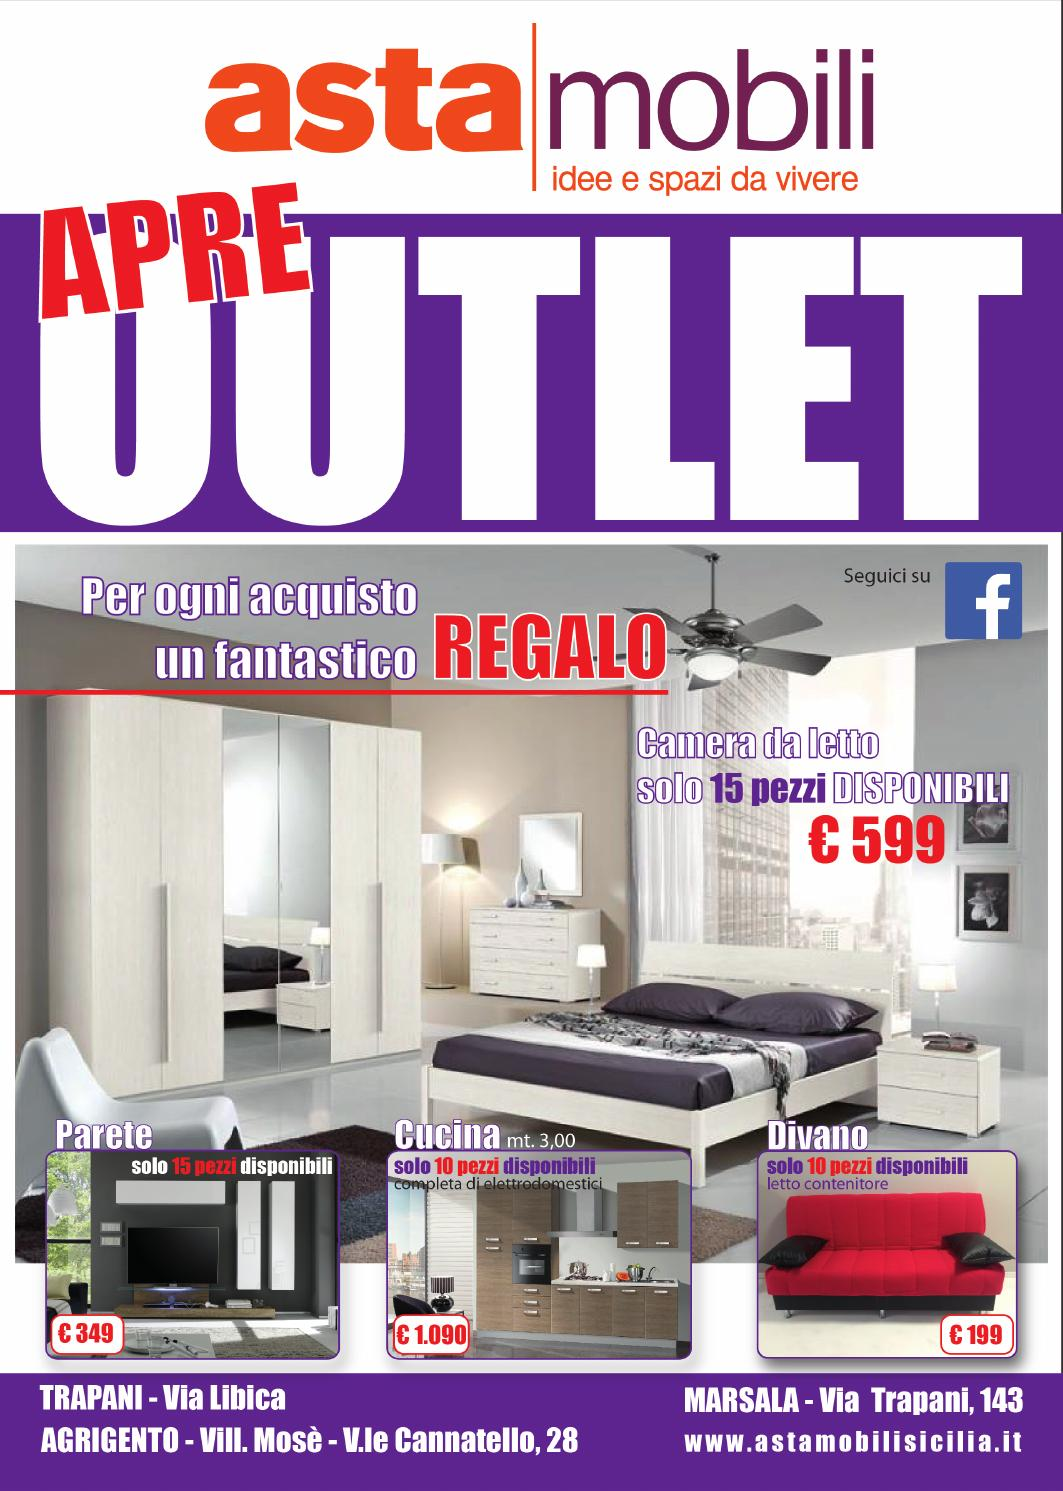 Apre asta mobili outlet by asta mobili sicilia issuu for Web mobili outlet